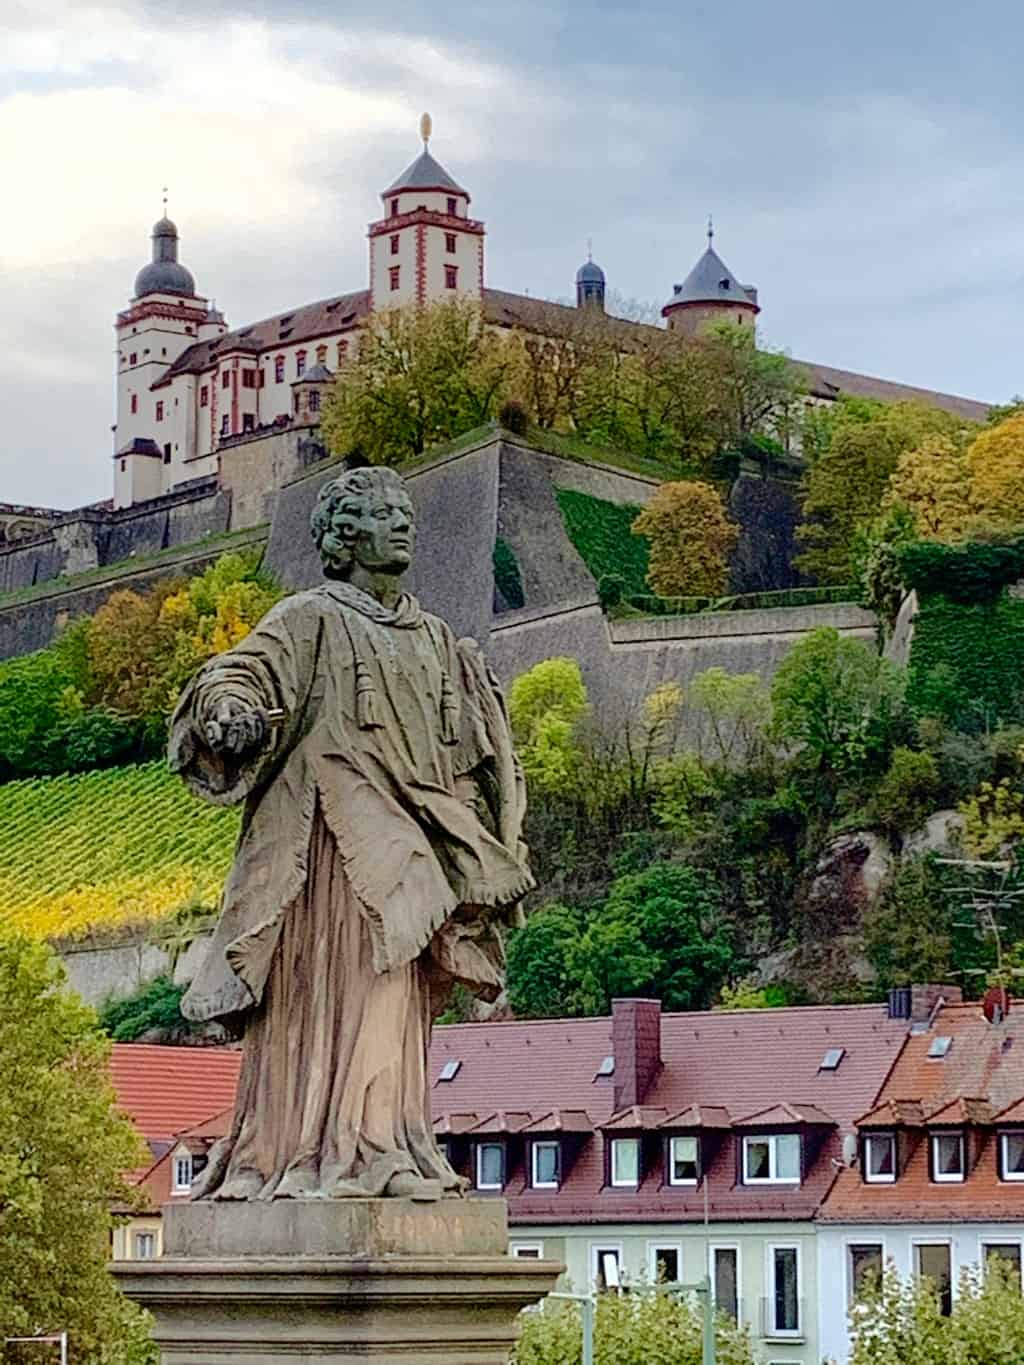 Hidden gems in Germany, Germany hidden gems, best cities to visit in Germany, german landmarks, hidden gems in Europe, best, hidden gems